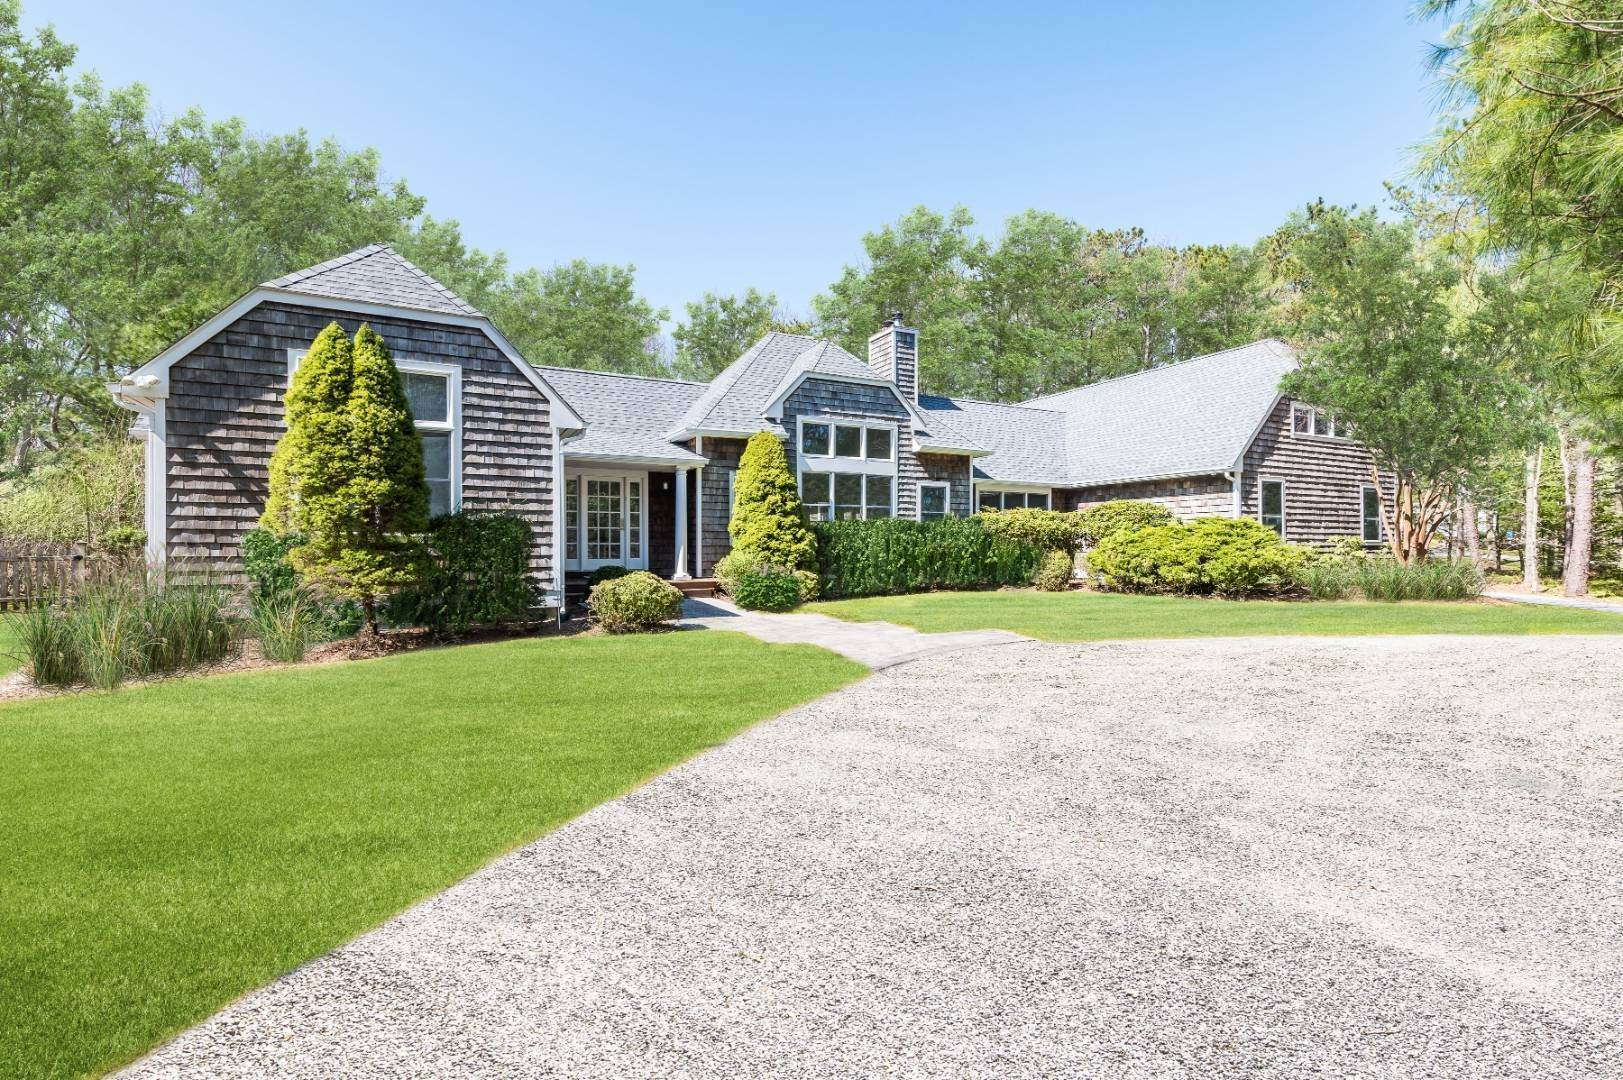 Single Family Home for Sale at Renovated Transitional Minutes To East Hampton 25 Quarty Ct, East Hampton, NY 11937